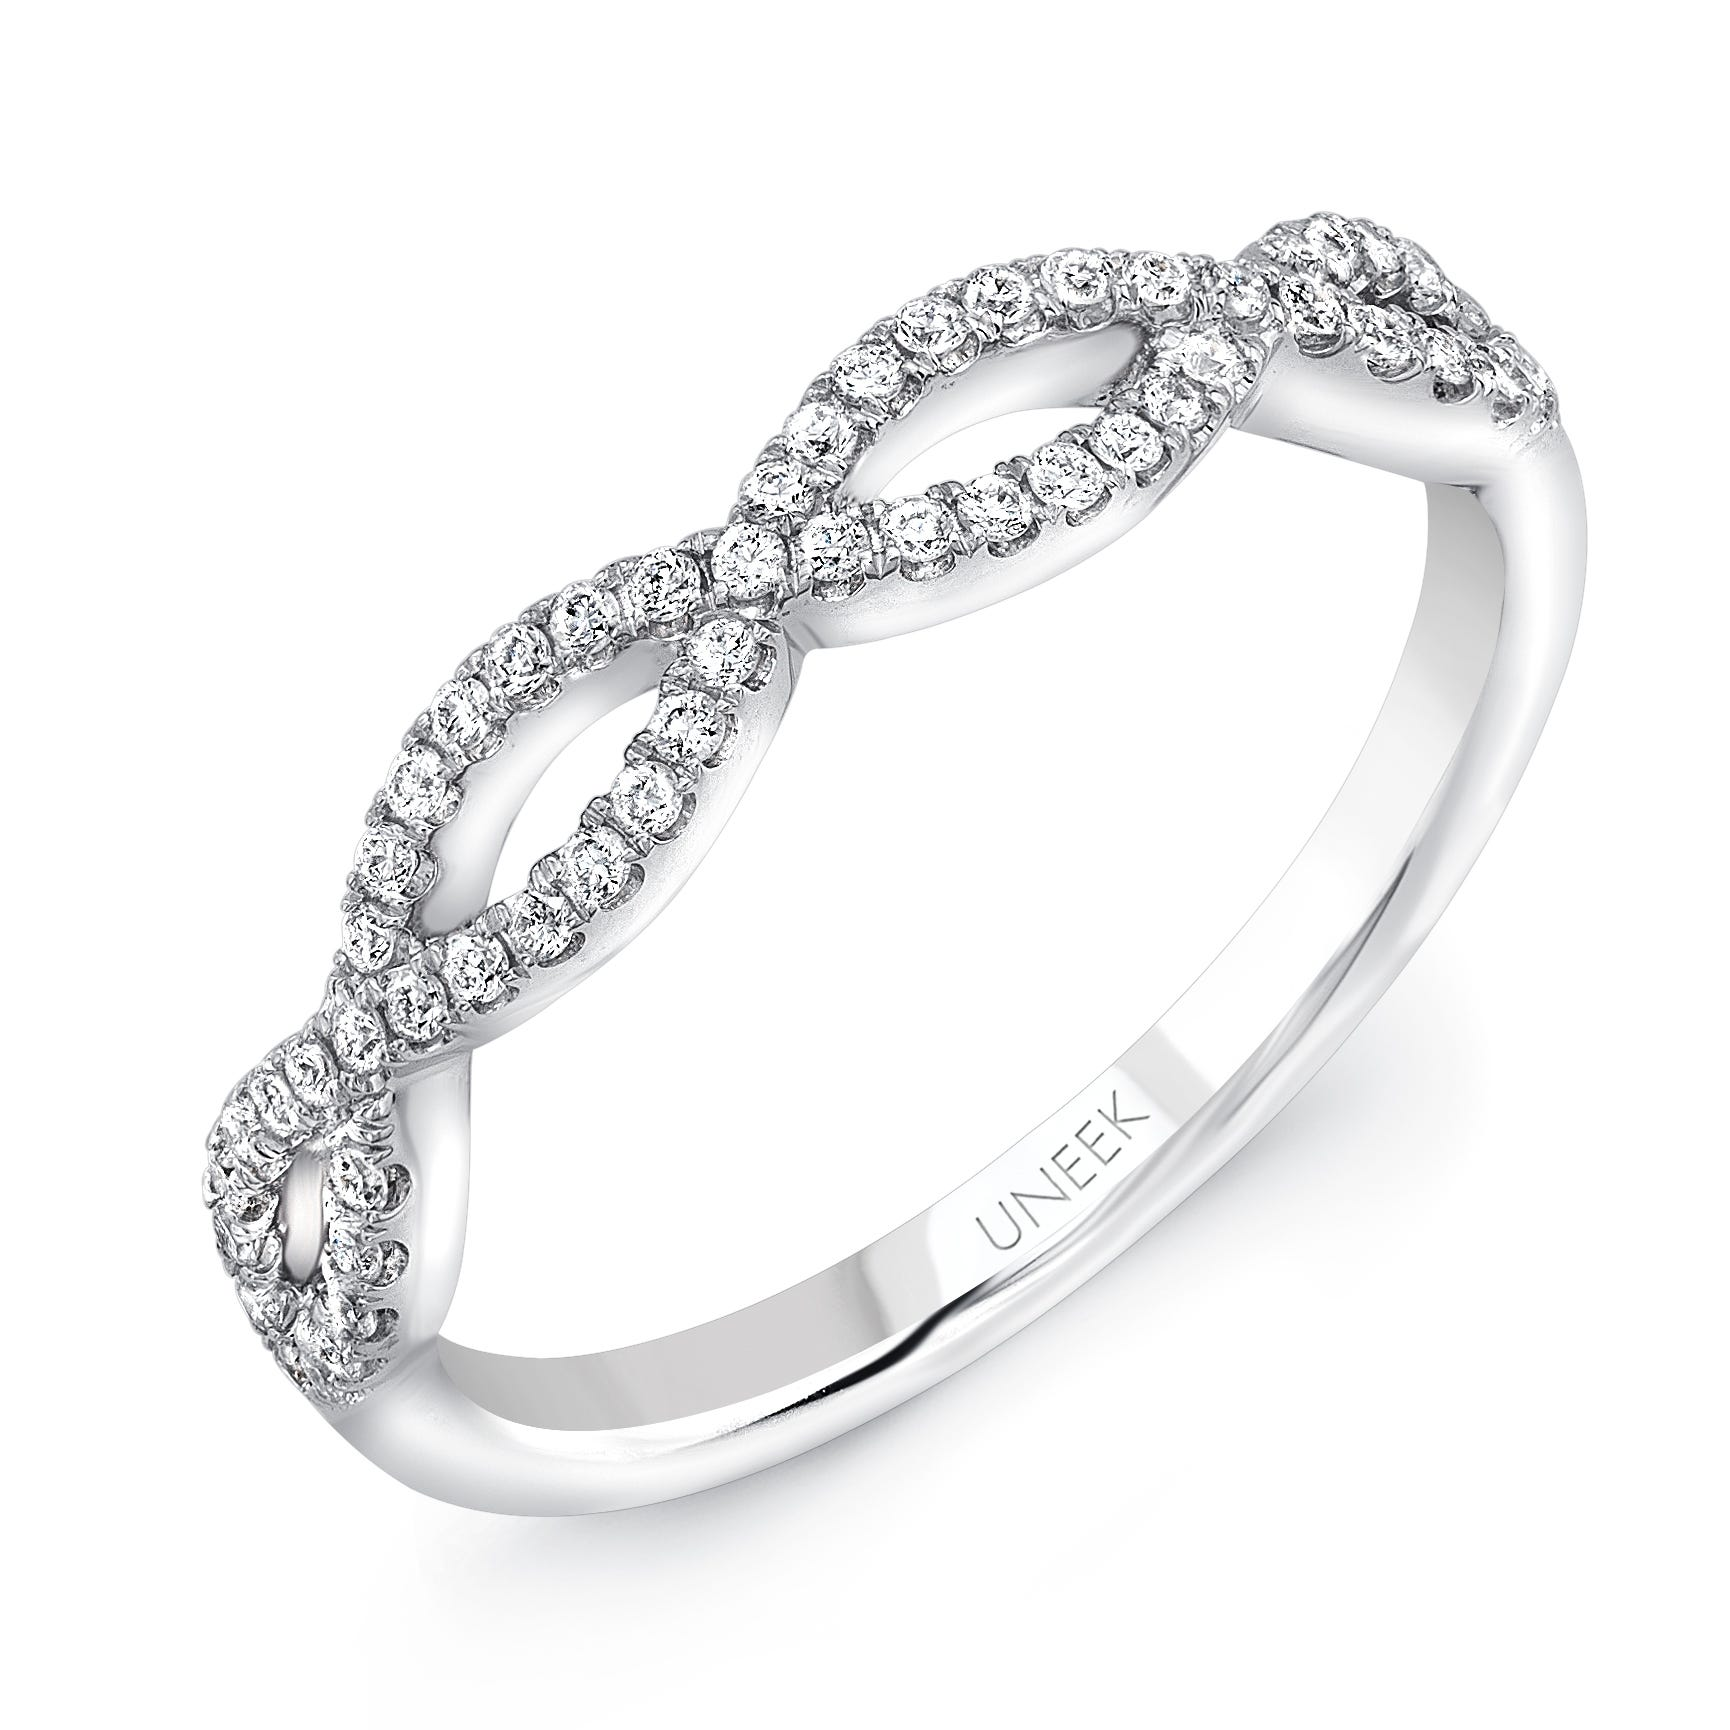 Infinity Wedding Band.Uneek Diamond 20ctw Infinity Wedding Band In 14k White Gold Sws189